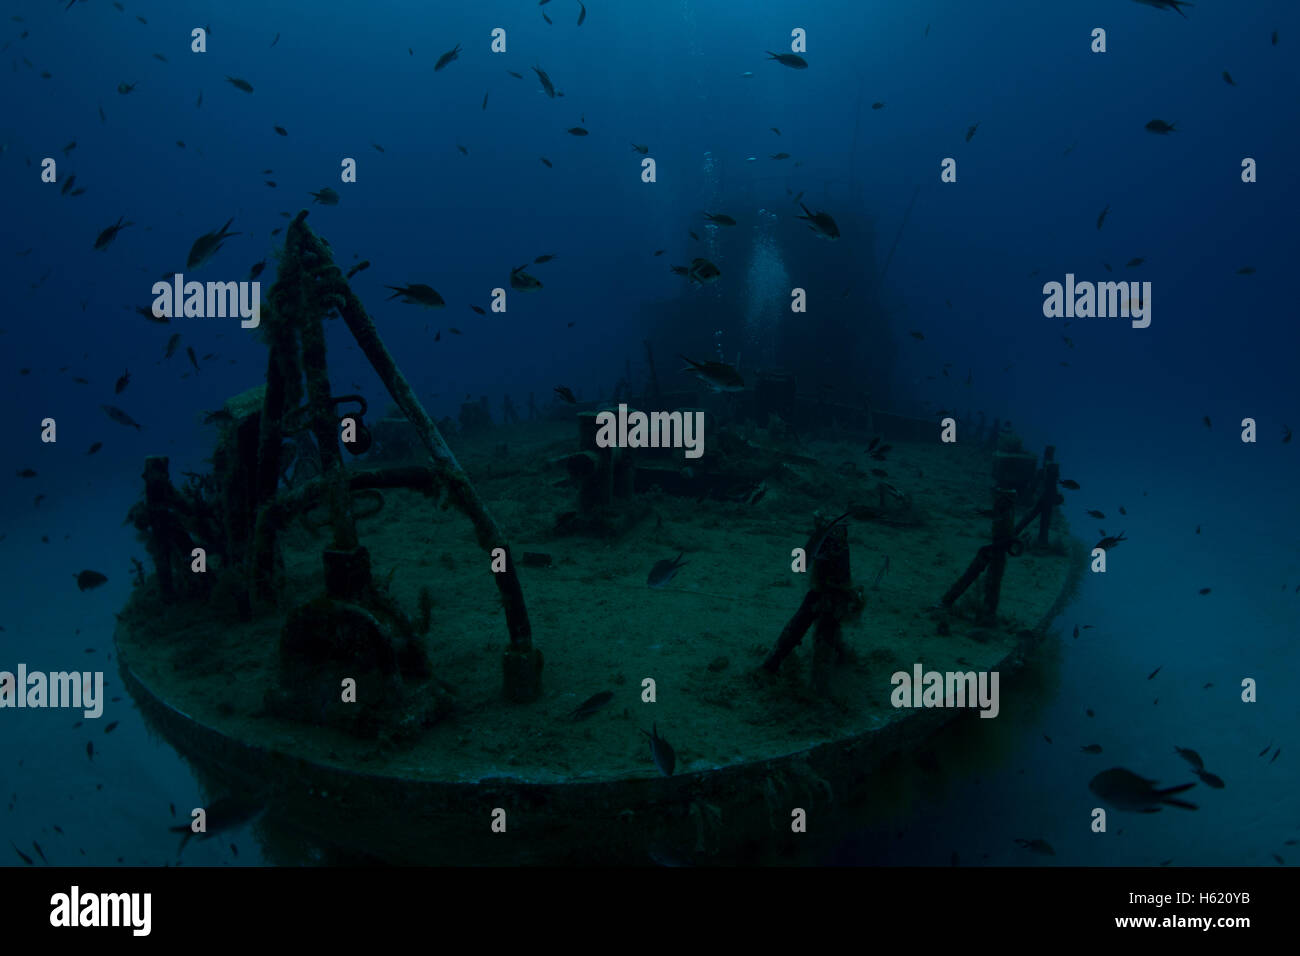 P31 wreck at Comino, Malta, Mediterranean sea. An old patrol boat sunken to be a dive attraction. - Stock Image